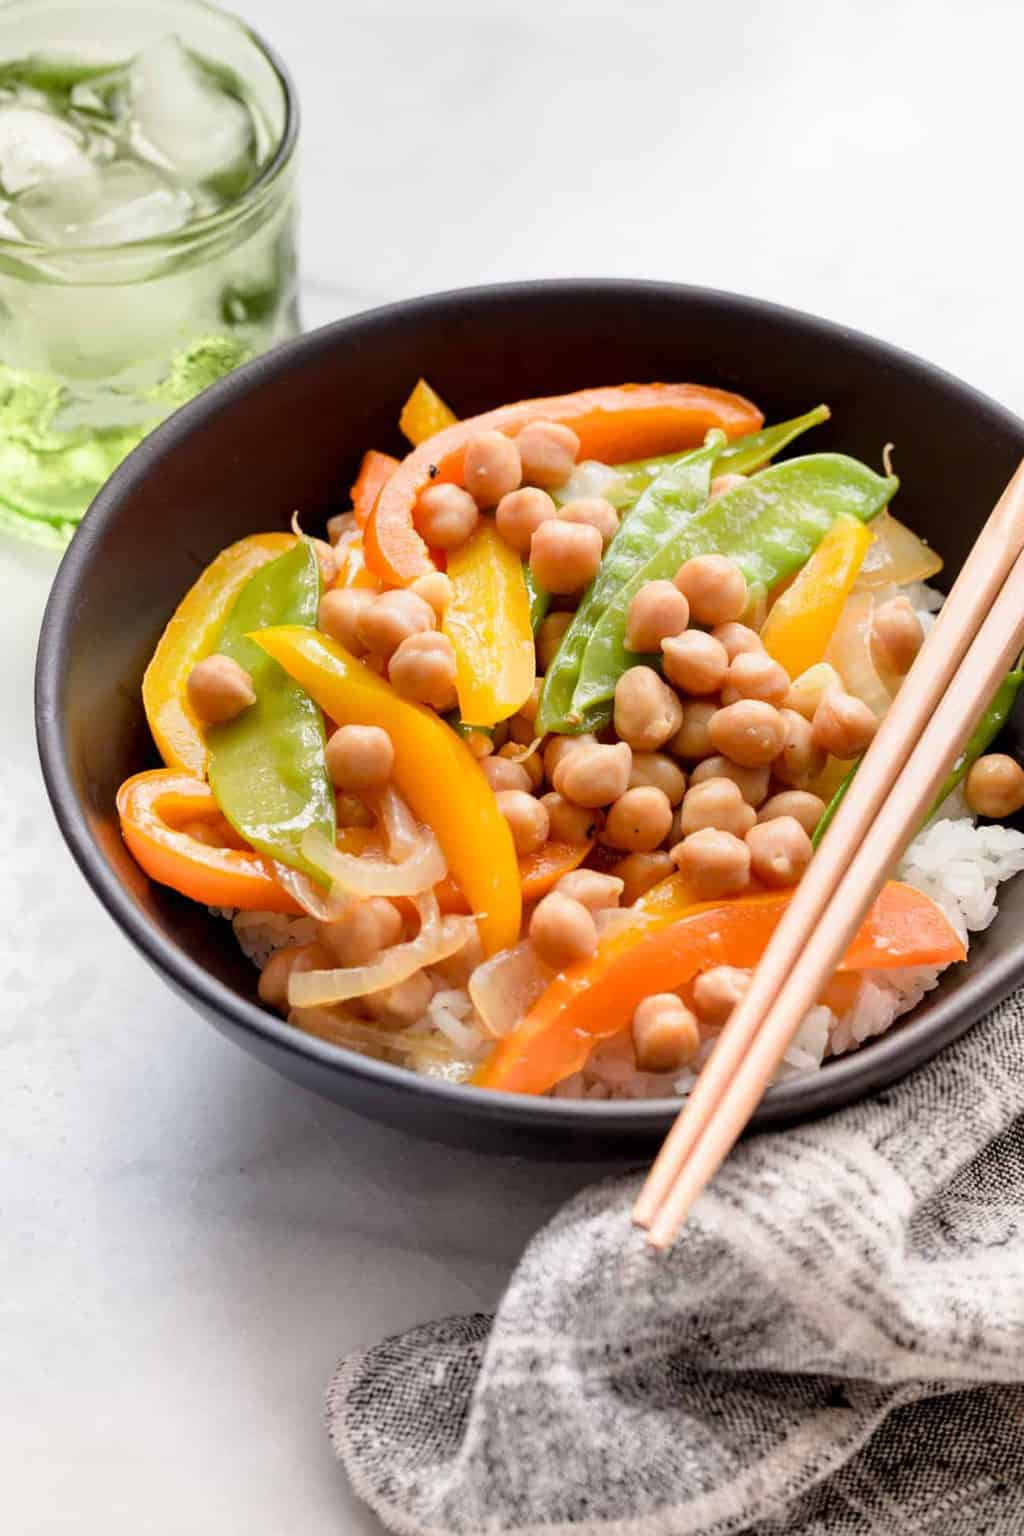 Your New Go-To Meatless Monday Dinner: Quick Chickpea Stir Fry